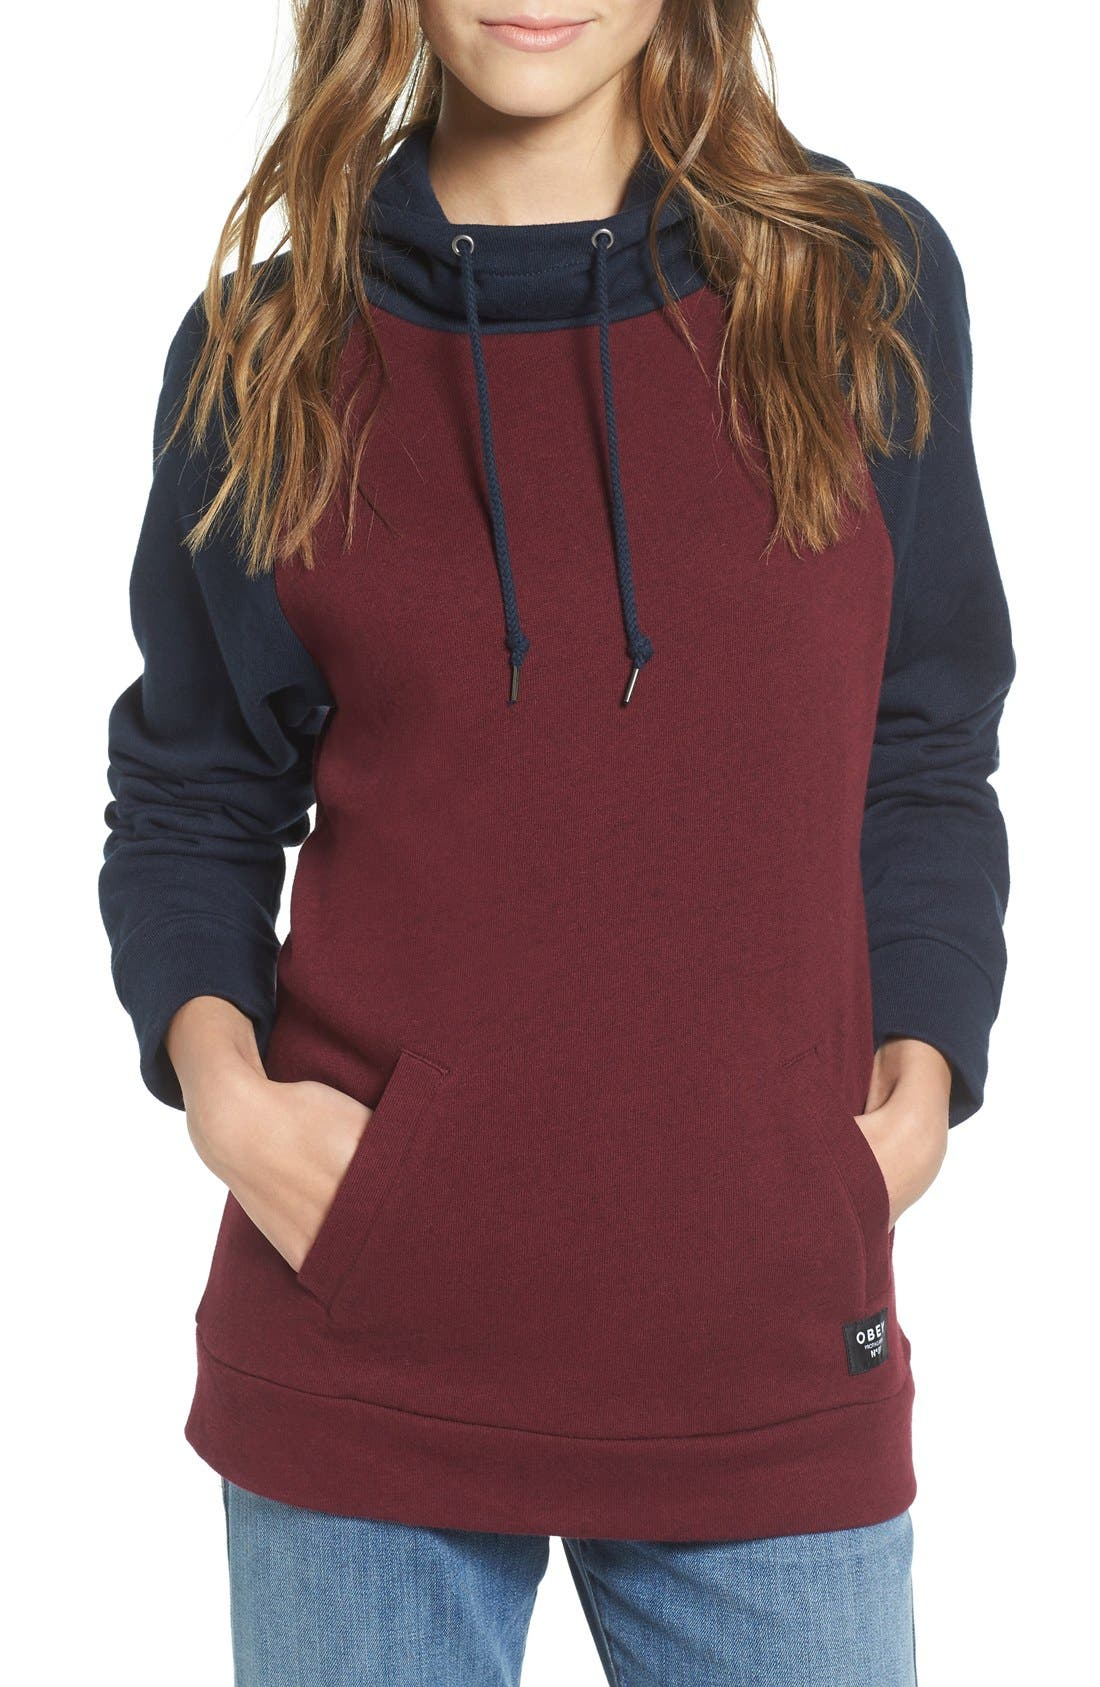 Alternate Image 1 Selected - Obey 'Jackson' Colorblock Hooded Sweatshirt